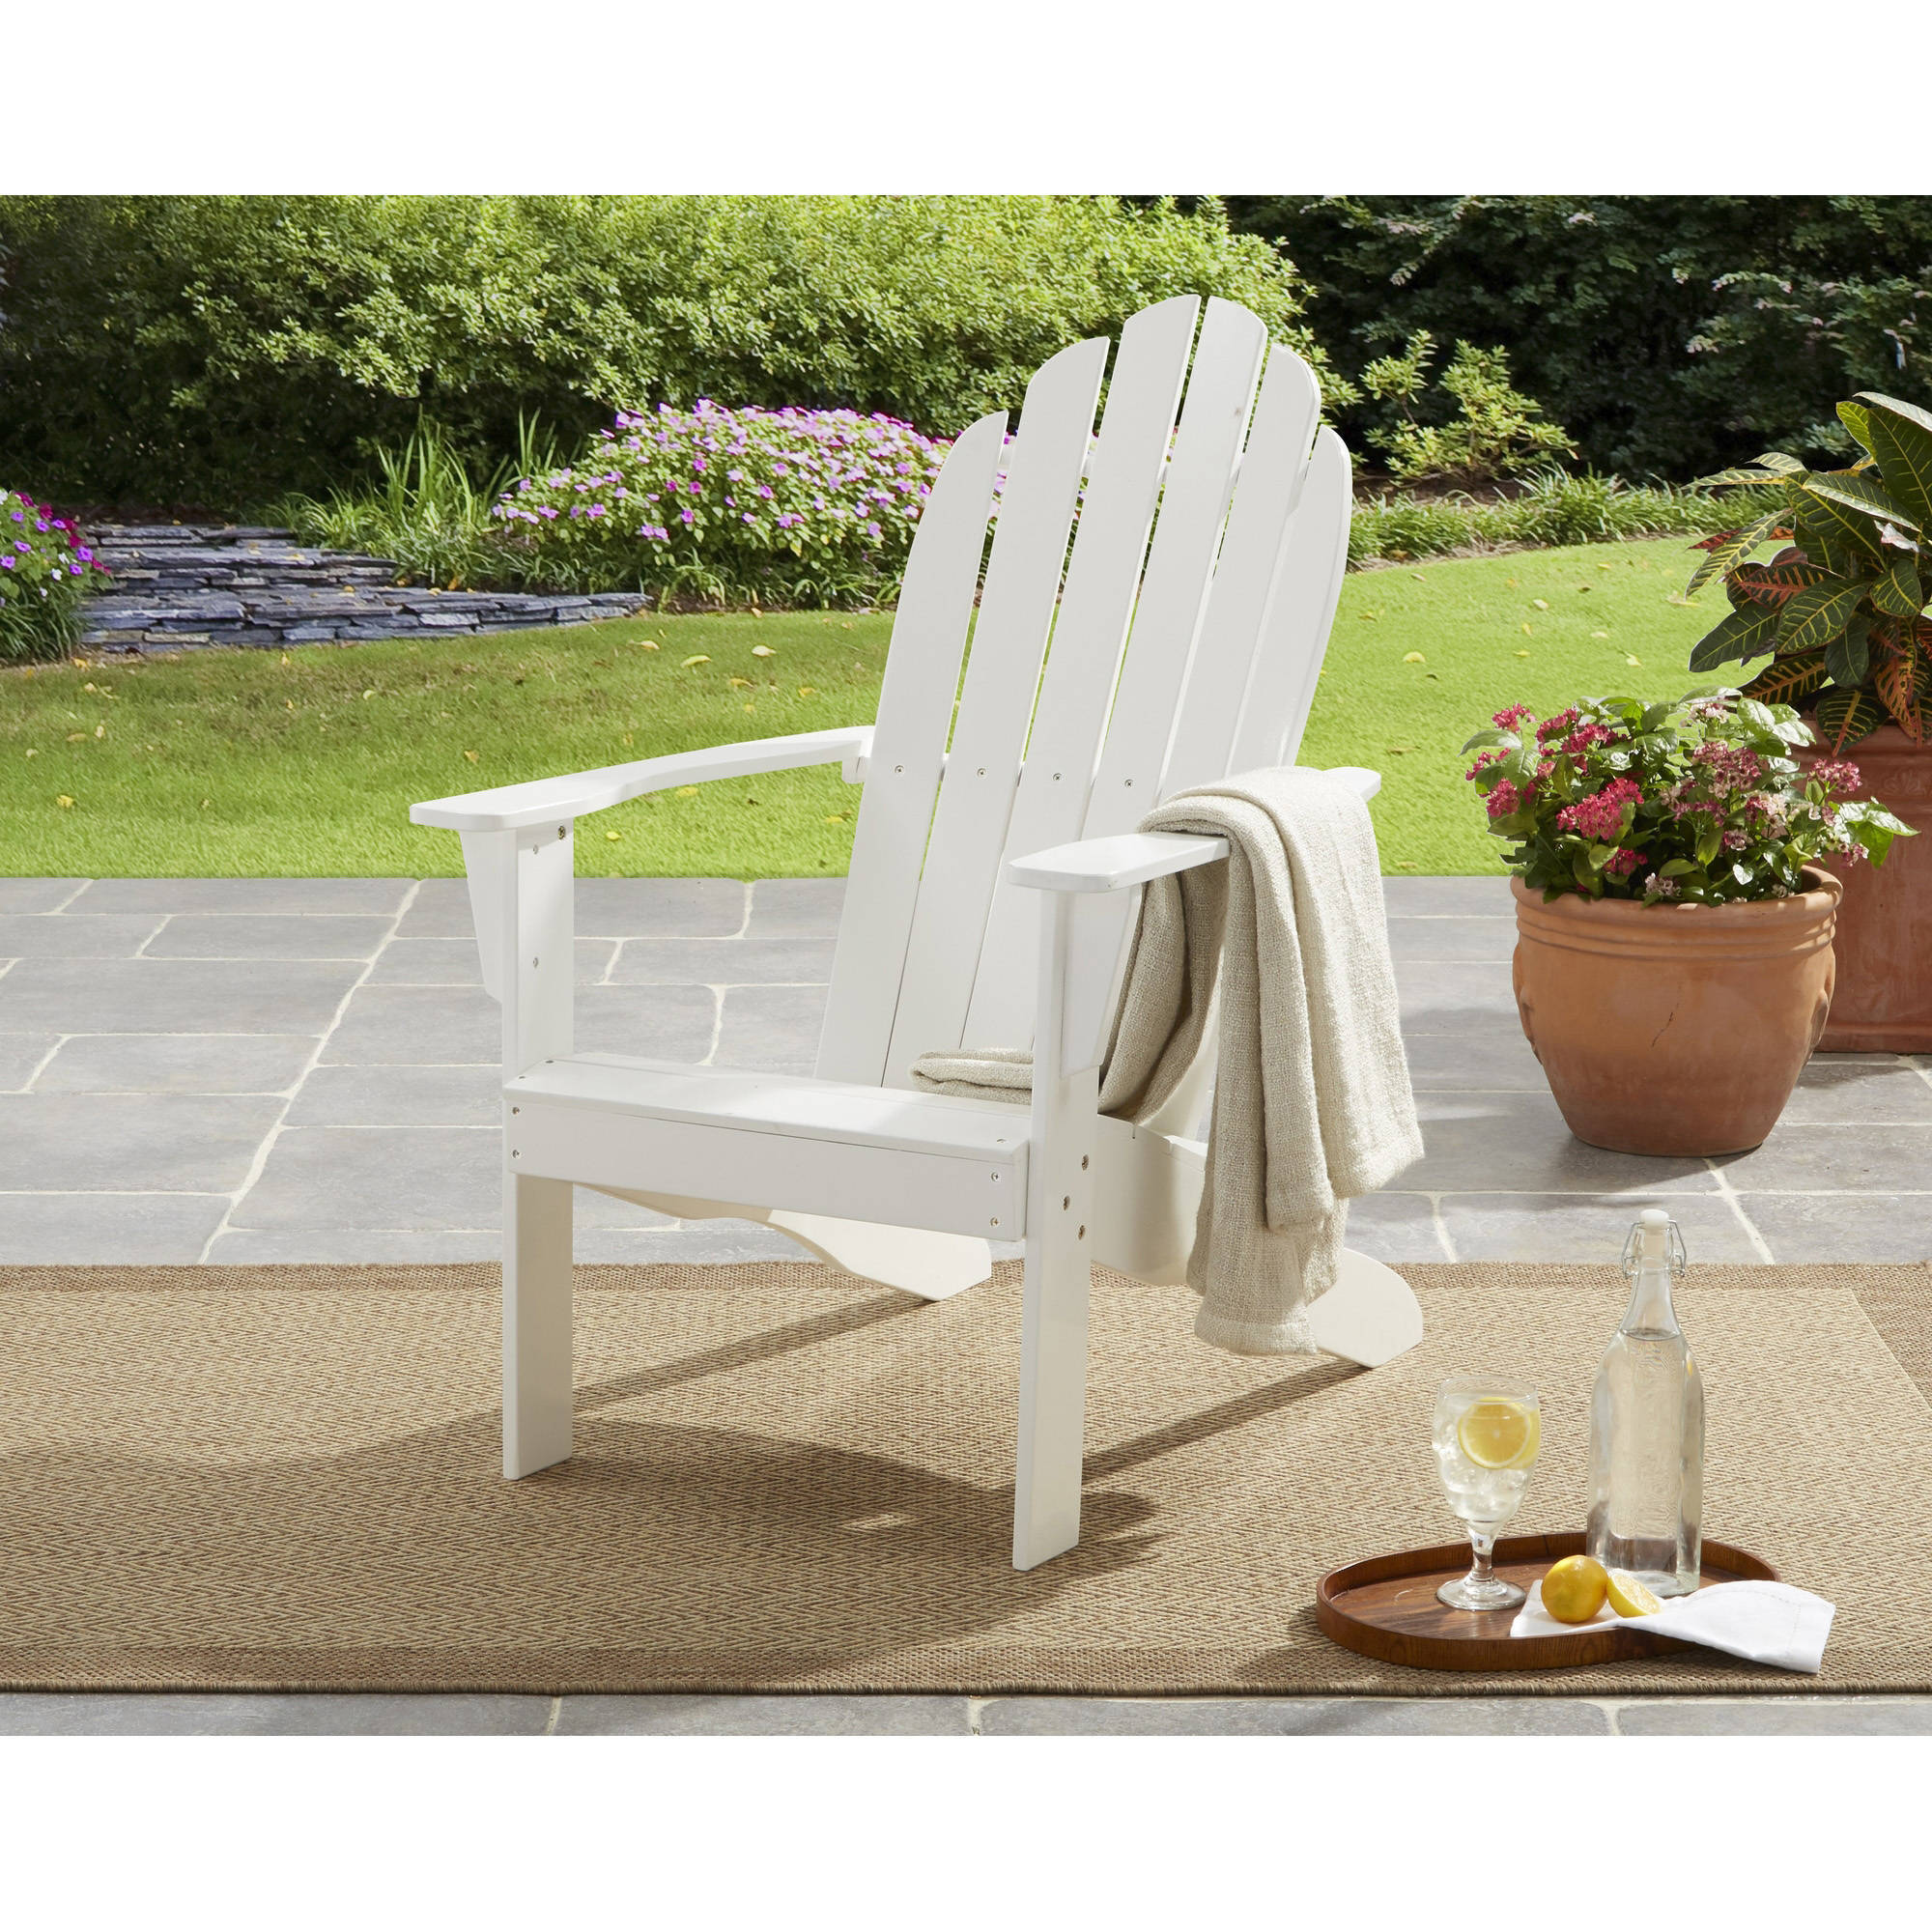 Mainstays Adirondack Chair Walmart